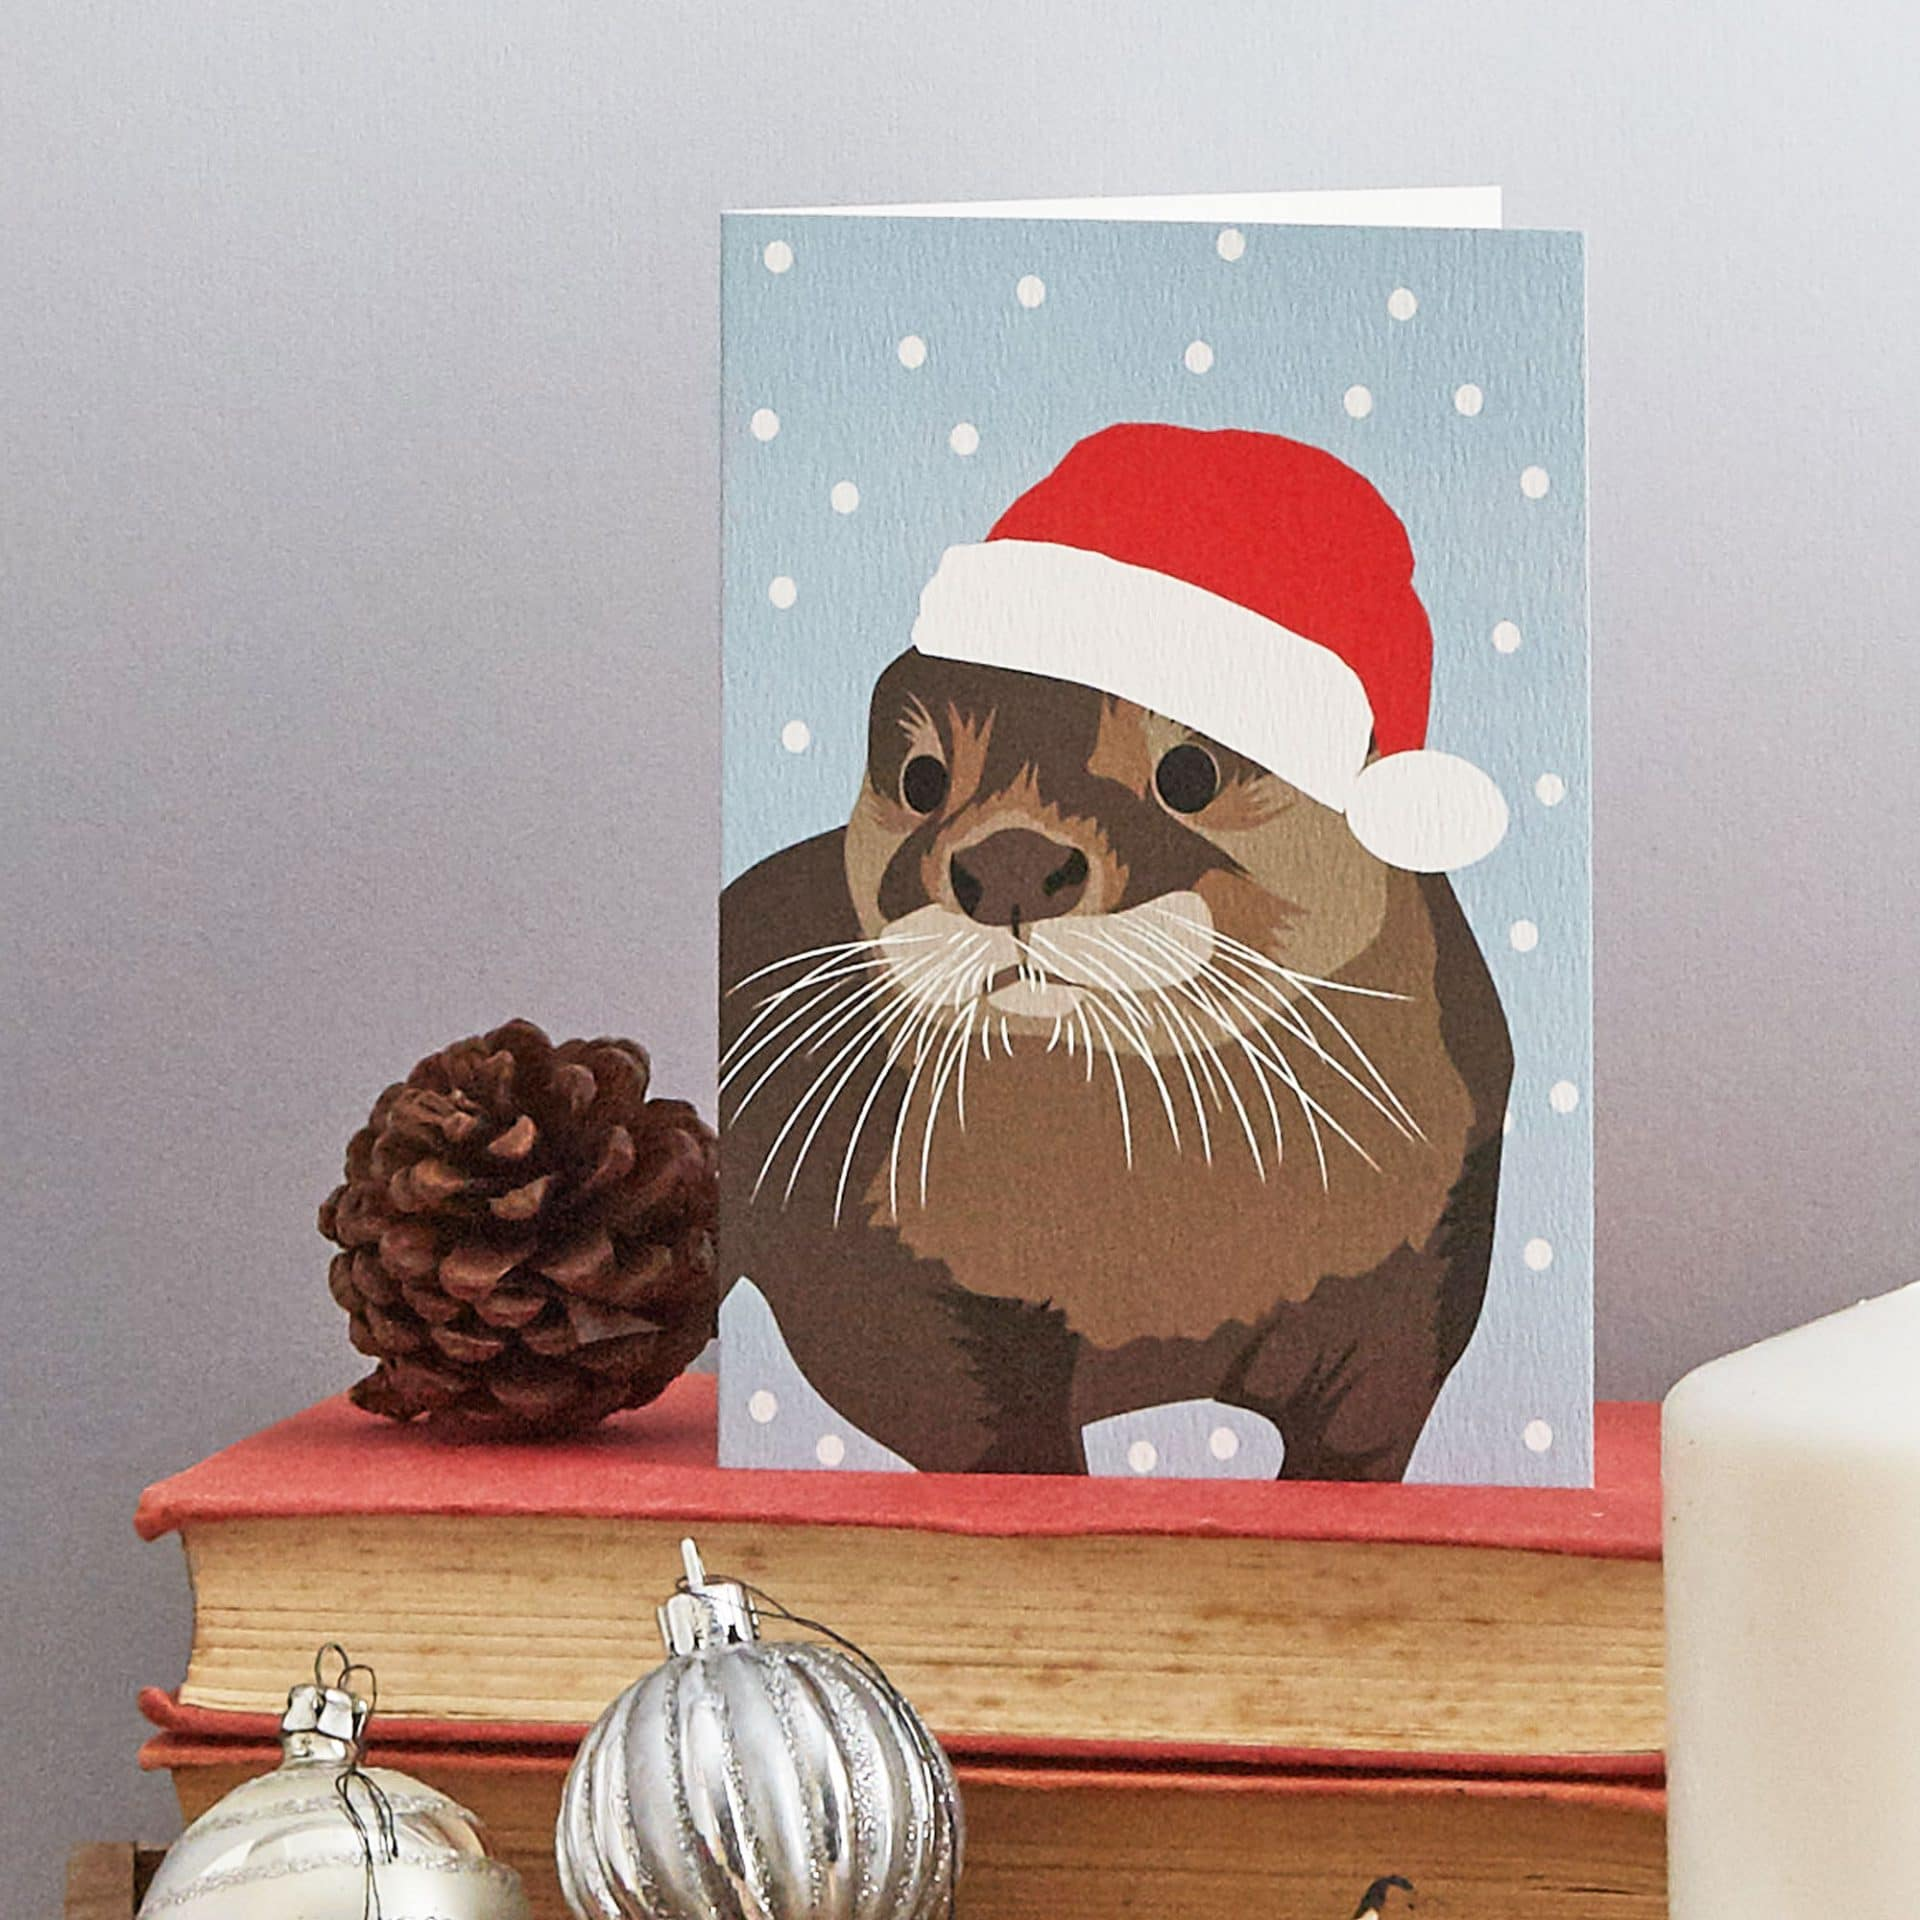 Christmas Card Luxury Designer Personalised Message Sustainable Environmentally Friendly FSC Paper Plastic Free - otter Christmas greeting card by Lorna Syson